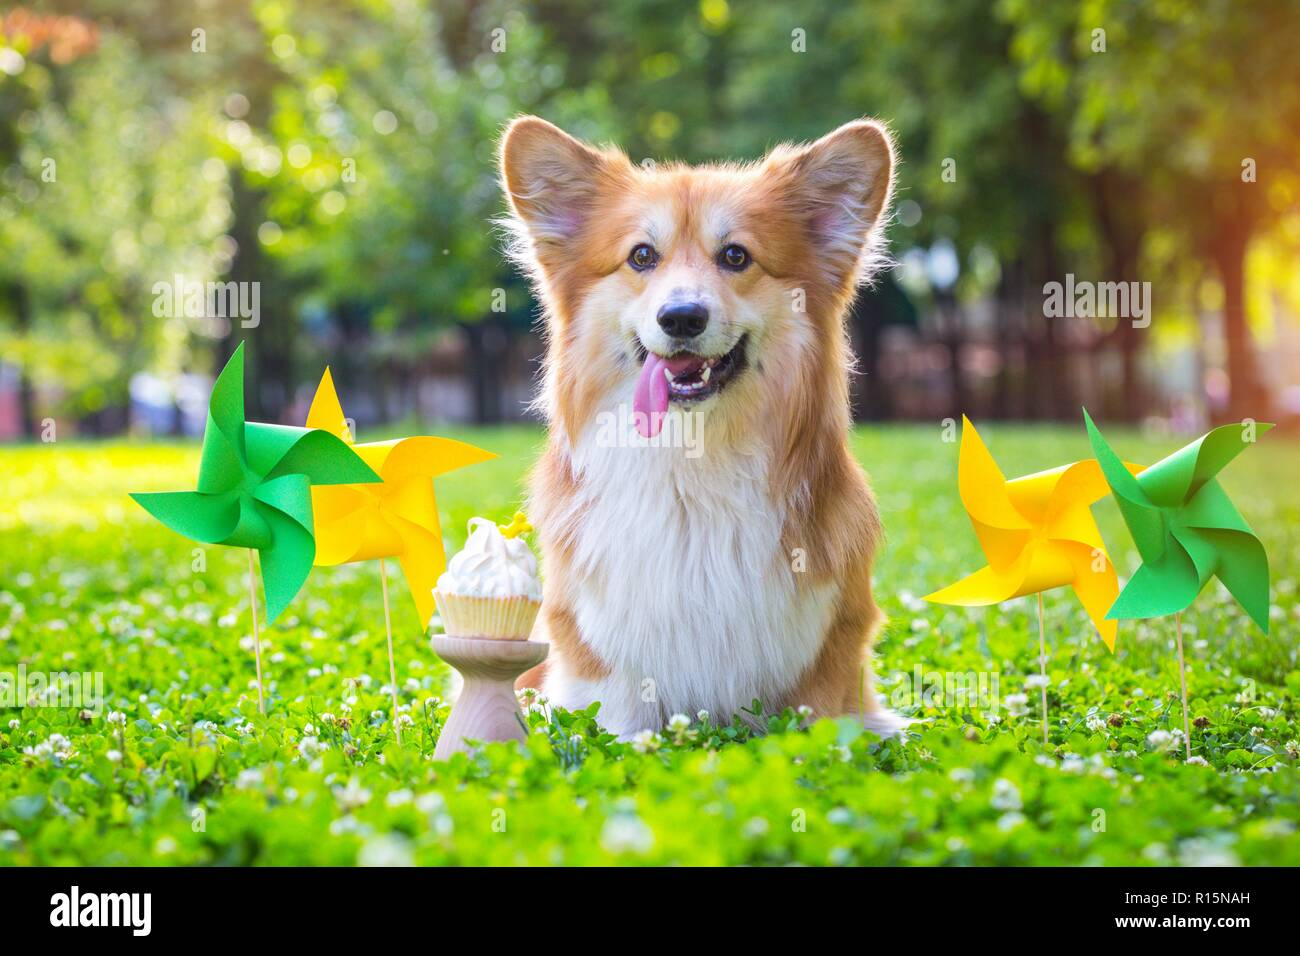 birthday off beautiful corgi fluffy on green lawn and colorful party flags on the background - Stock Image